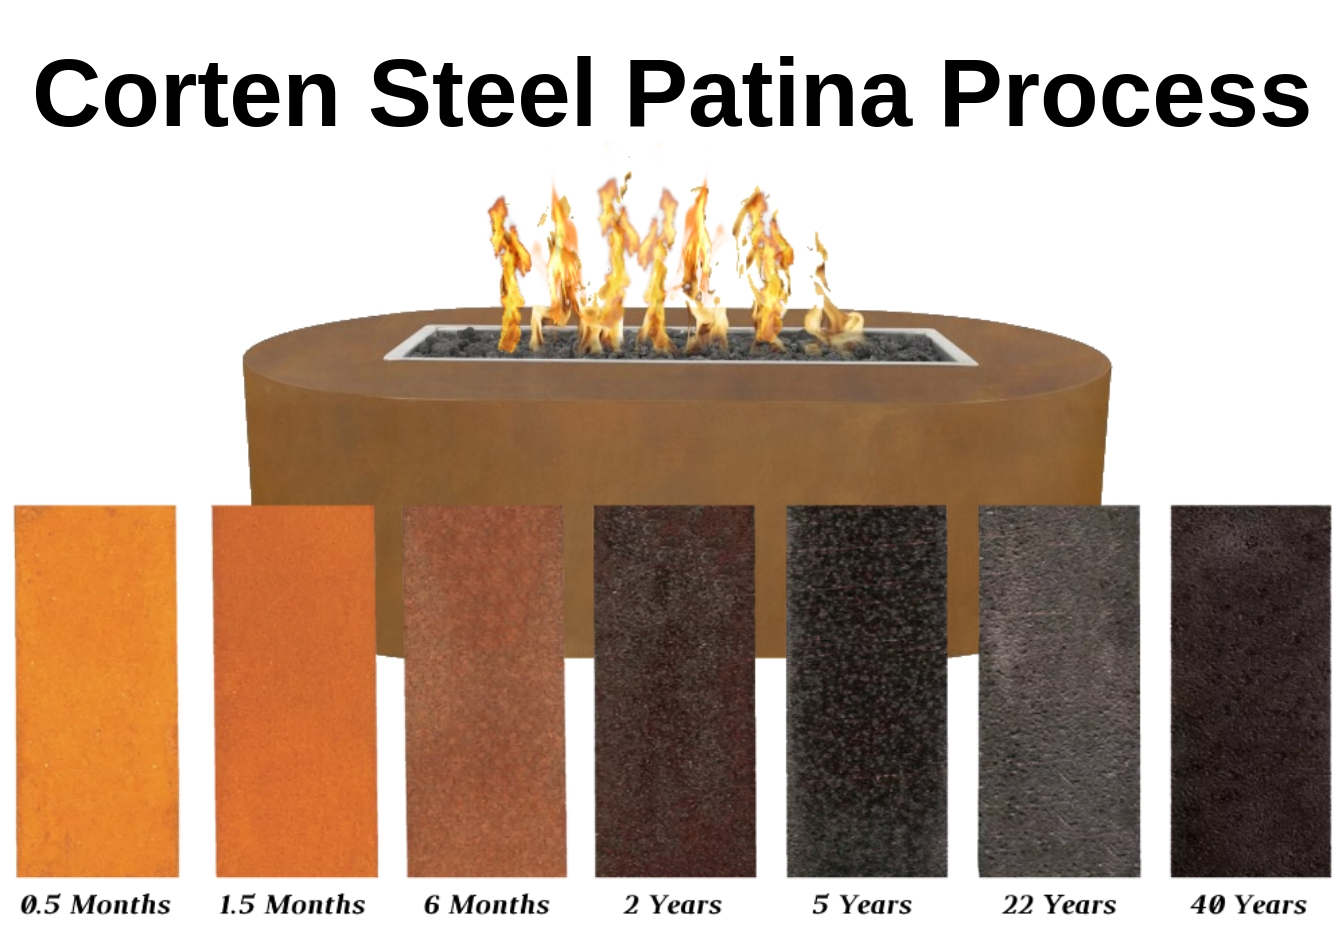 Corten Steel Patina Process